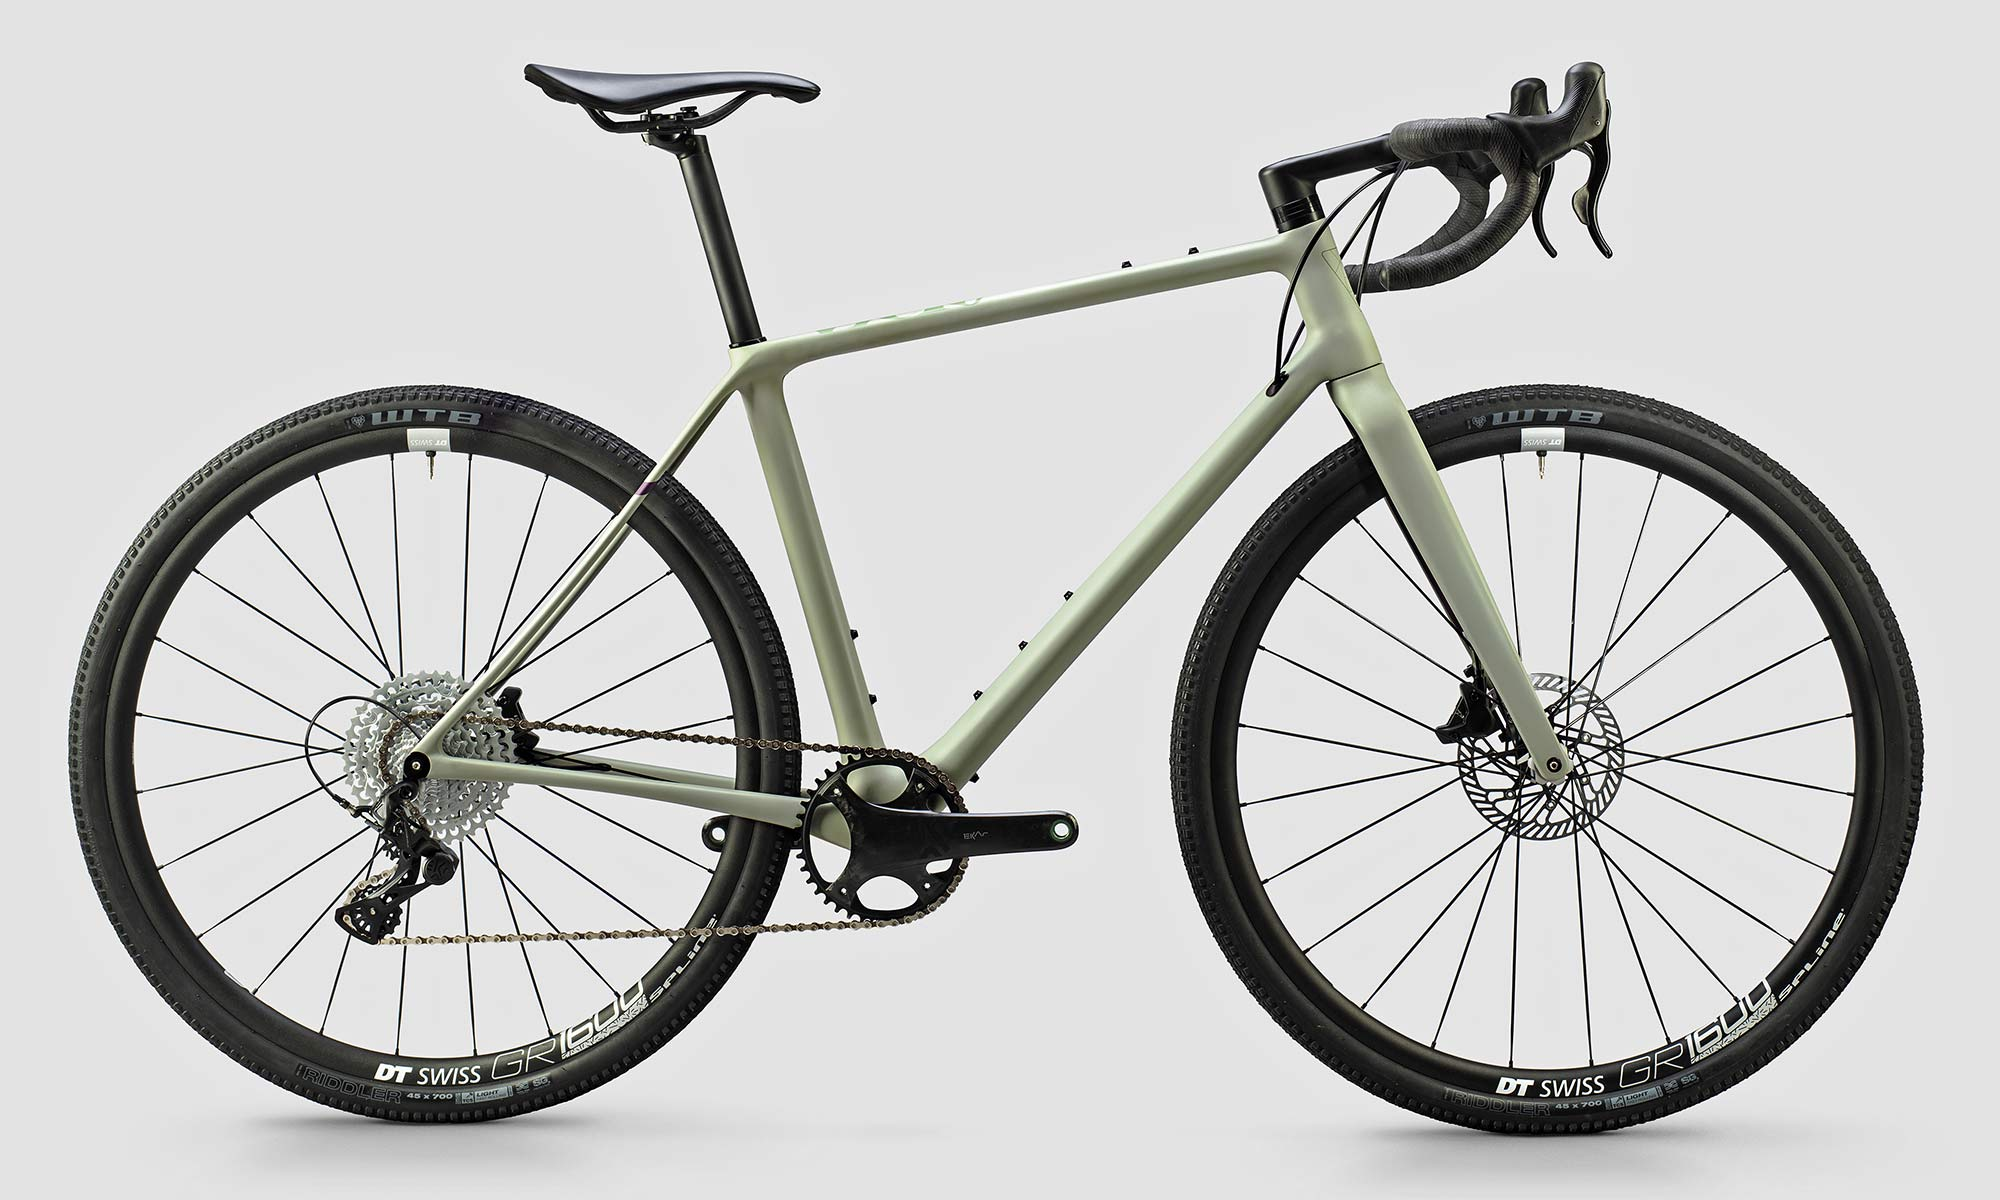 Vielo V+1 gravel bike, updated gen2 lightweight carbon fast gravel race bikes, Strato Campy Ekar complete